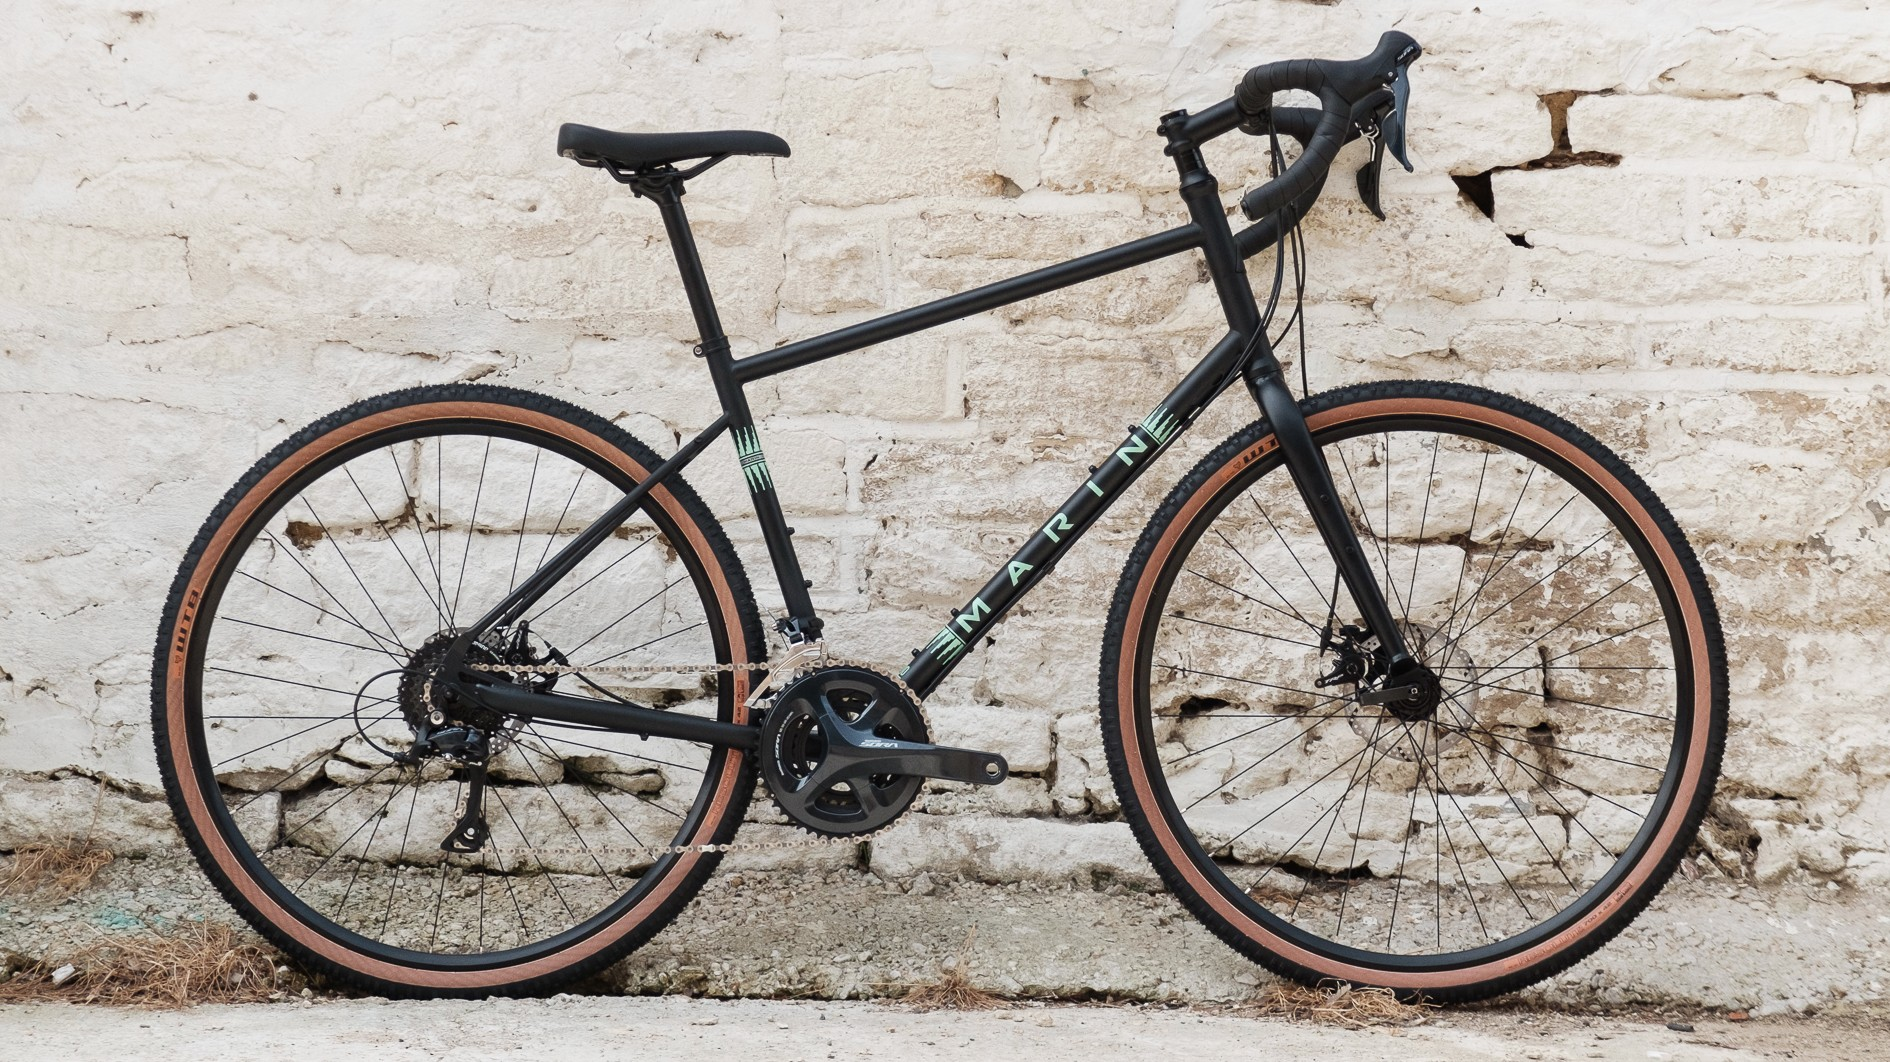 The Four Corners is Marin's dirt-touring bike